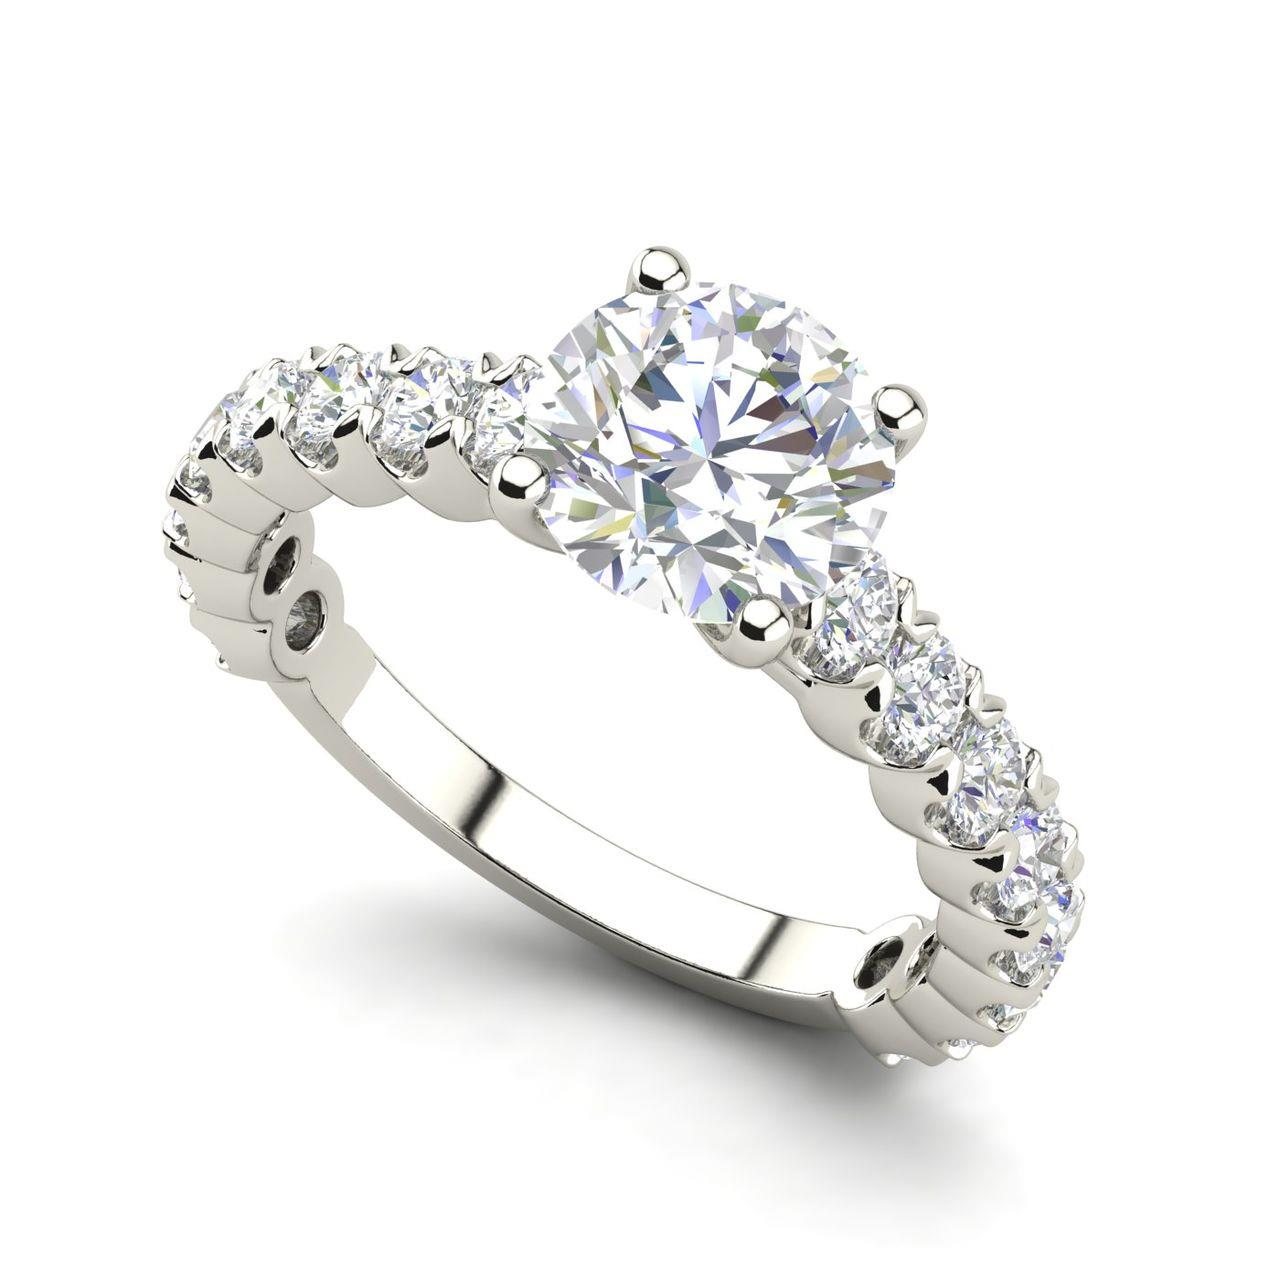 Solitaire 1.2 Carat Round Cut Diamond Engagement Ring